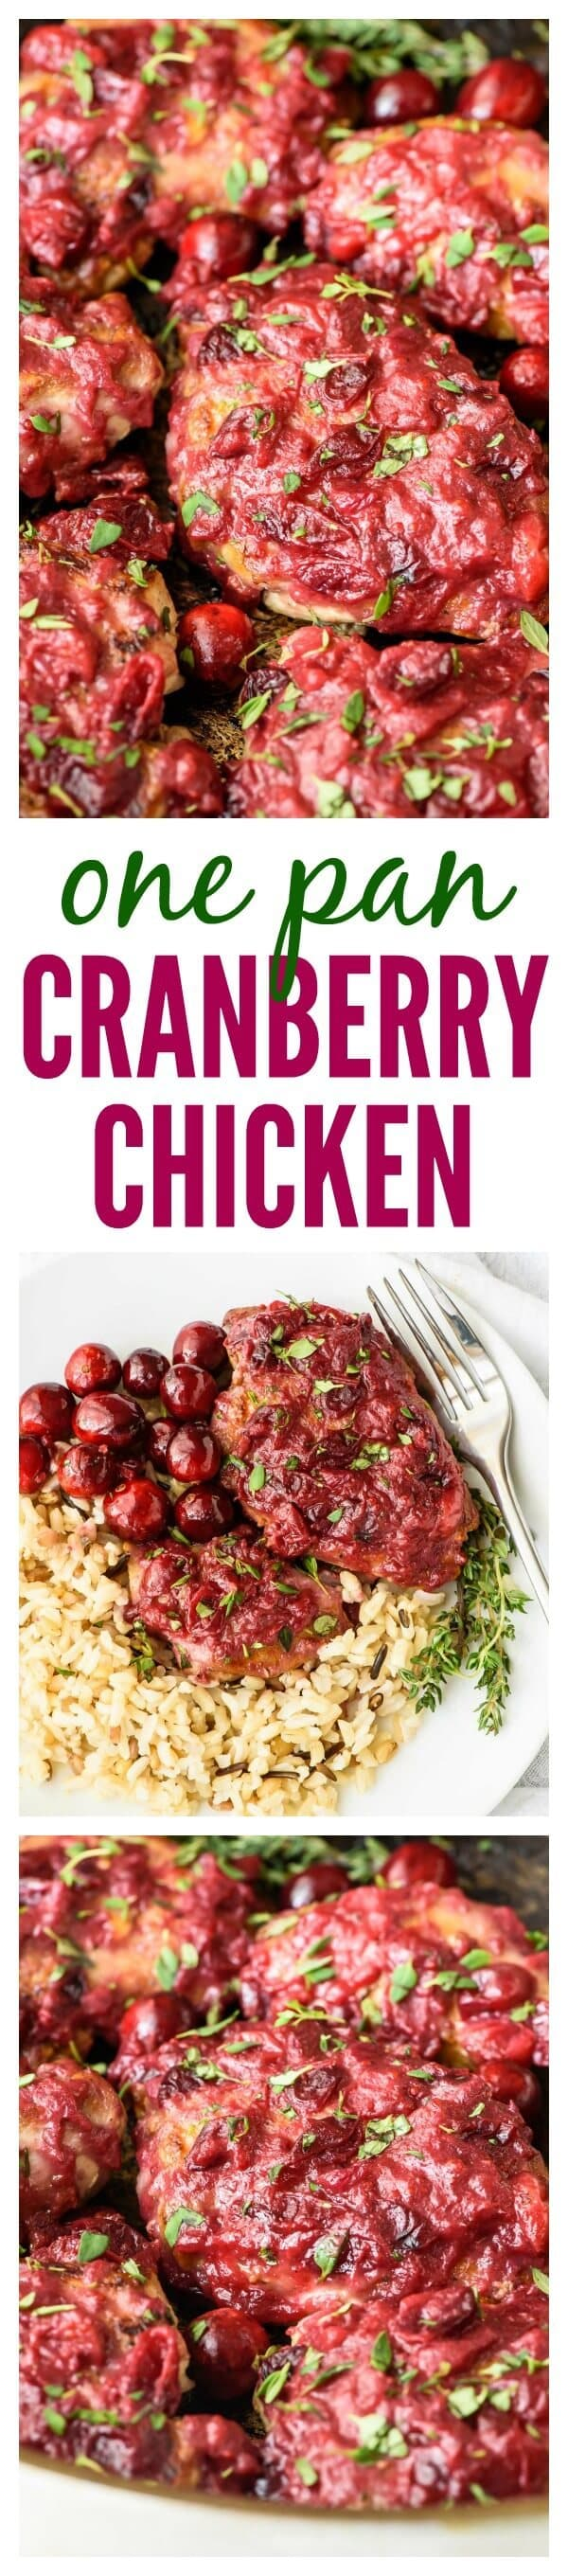 One Pan Cranberry Chicken. Juicy chicken with a sticky cranberry glaze. Ready in only 30 minutes!